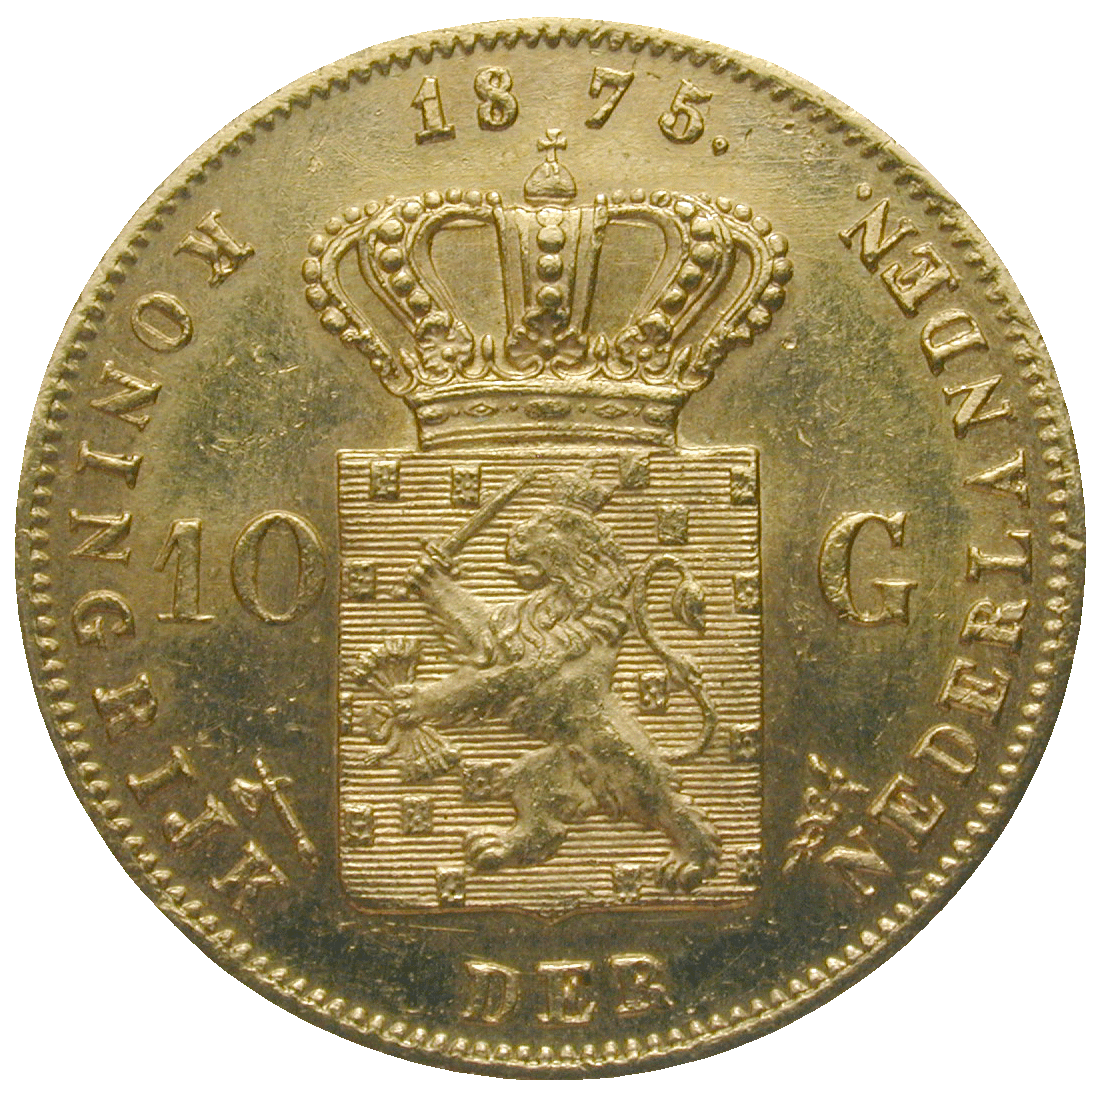 Kingdom of the Netherlands, William III, 10 Gulden 1875 (reverse)